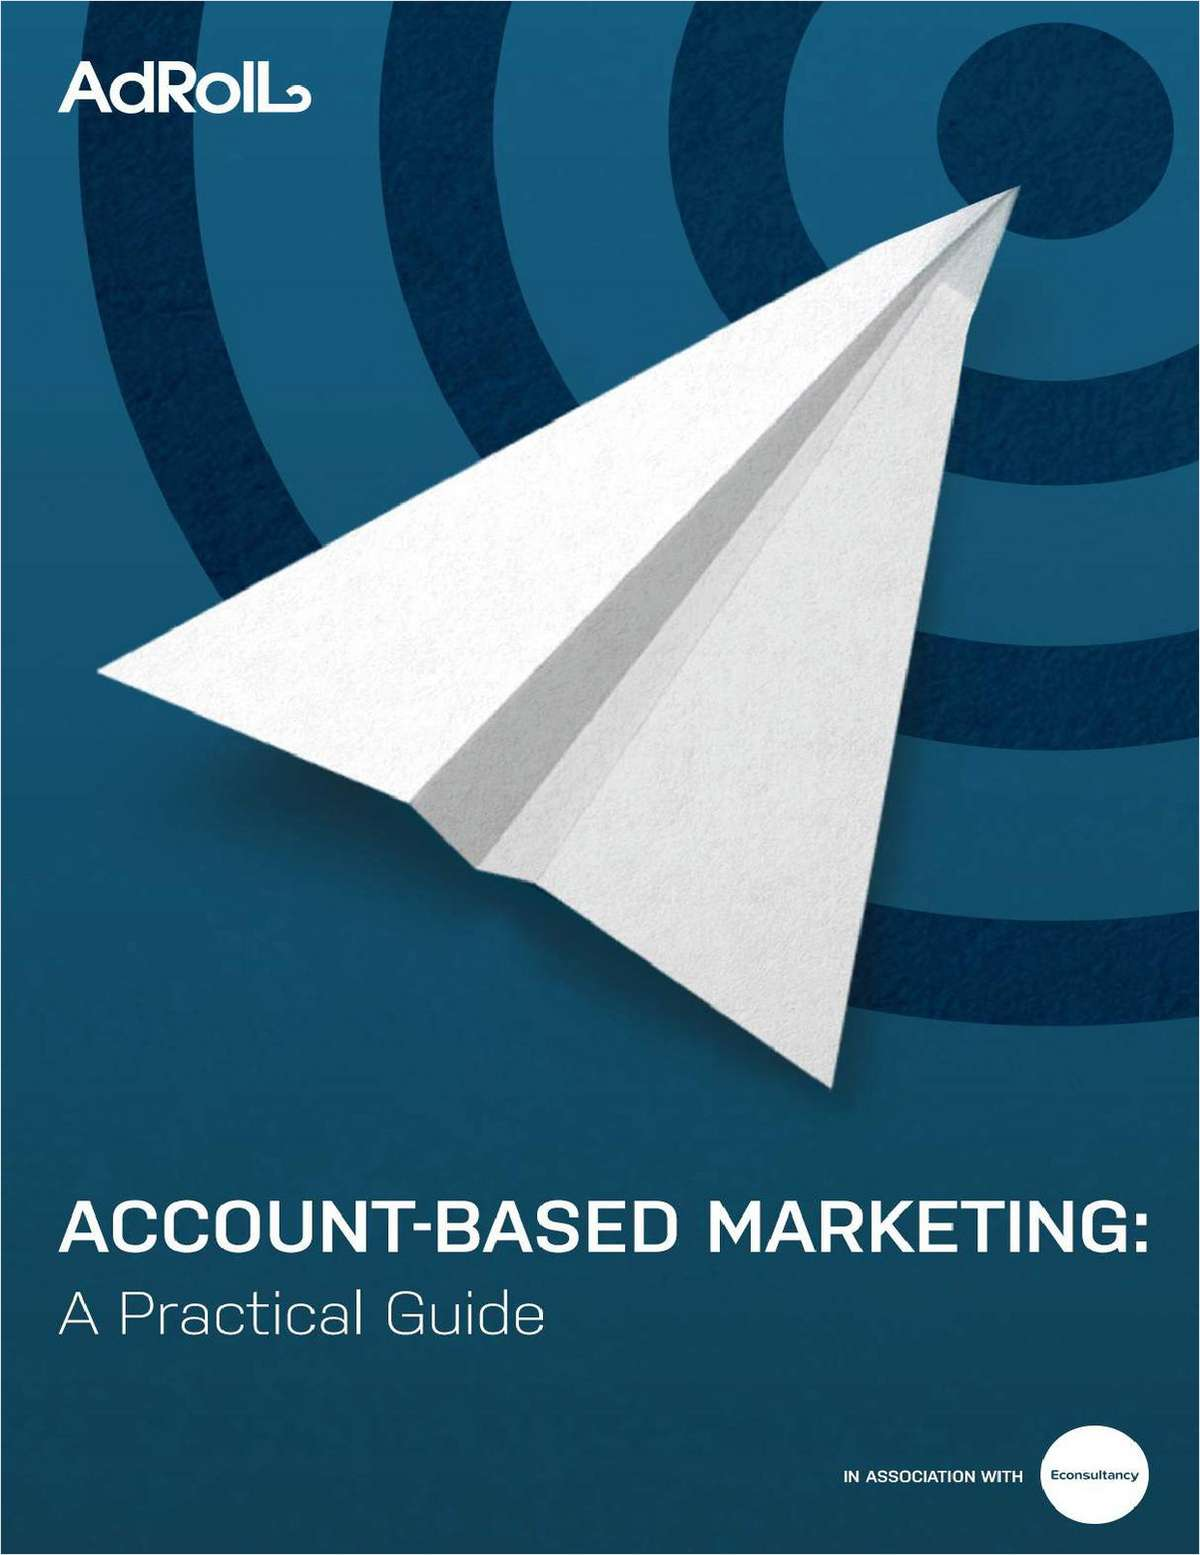 Account-Based Marketing: A Practical Guide